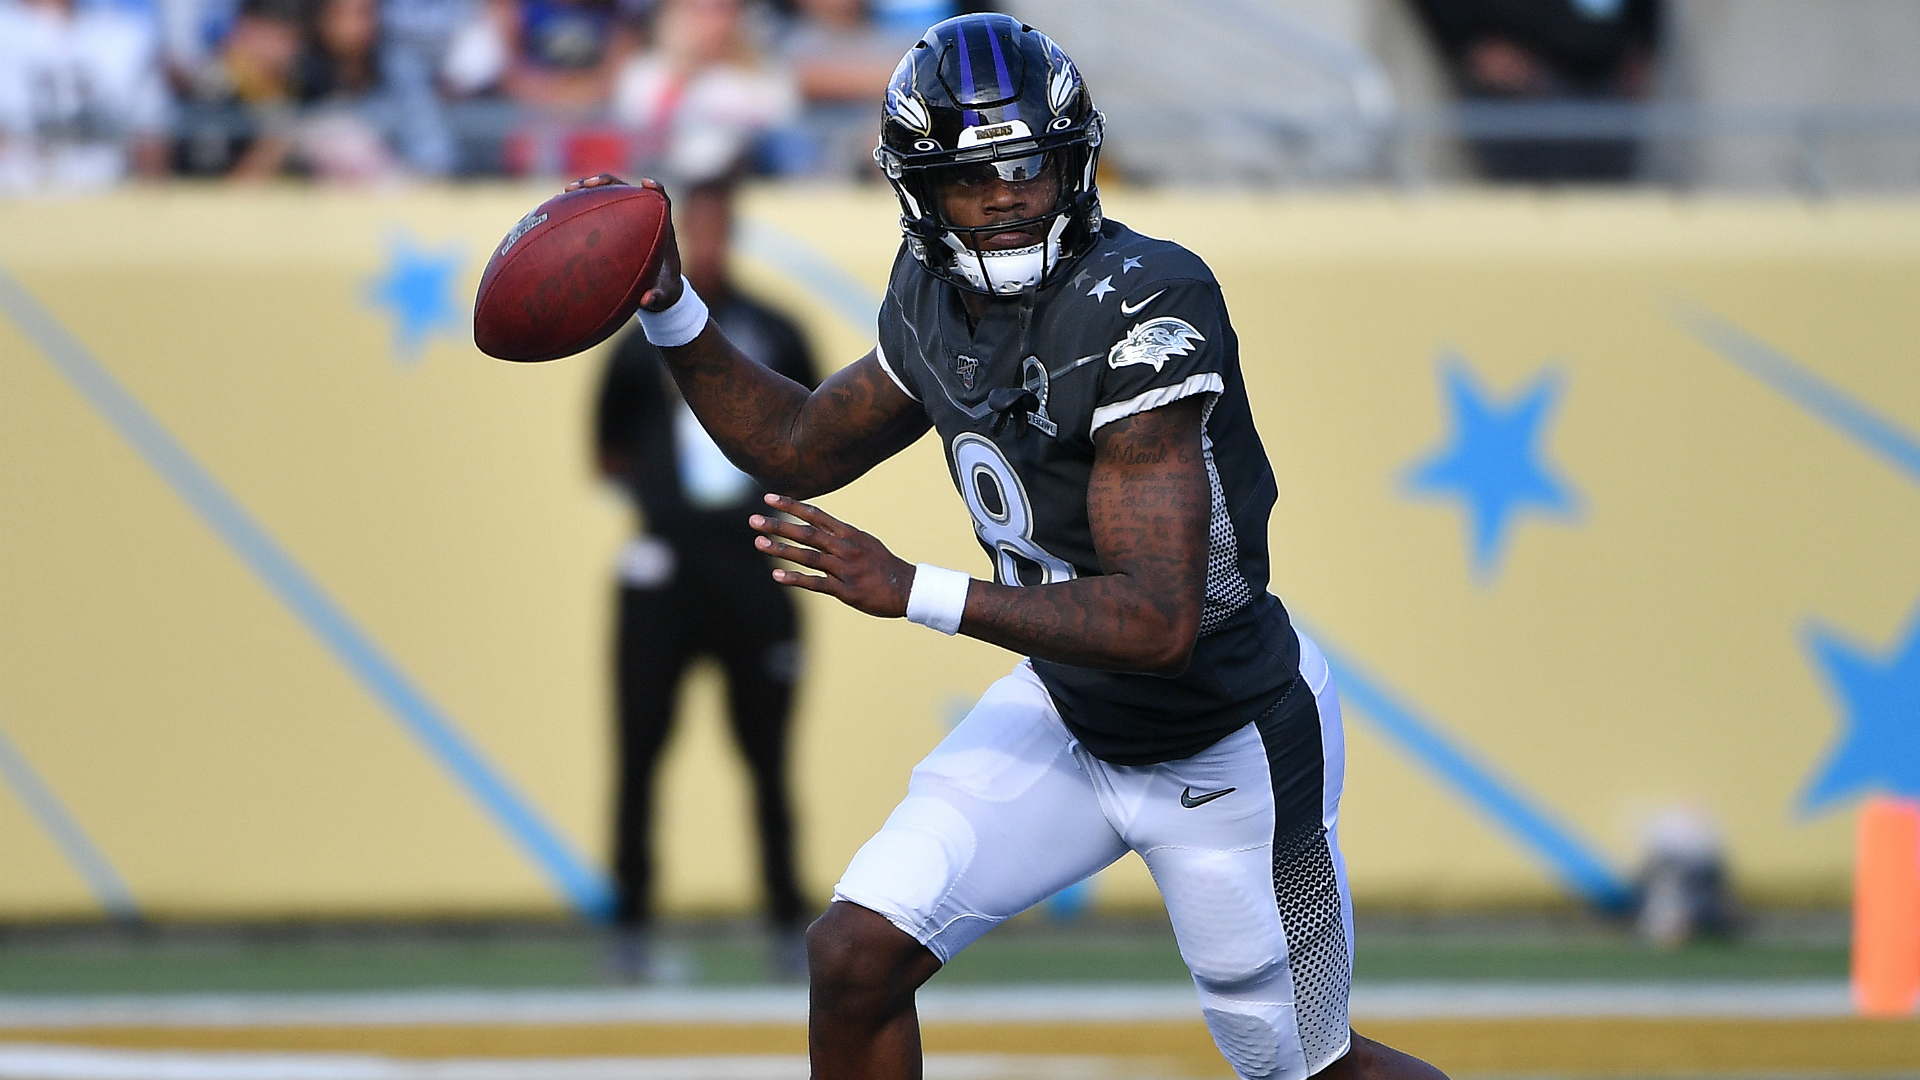 Who won the Pro Bowl in 2020? Final score, highlights, MVP winner from AFC vs. NFC showdown